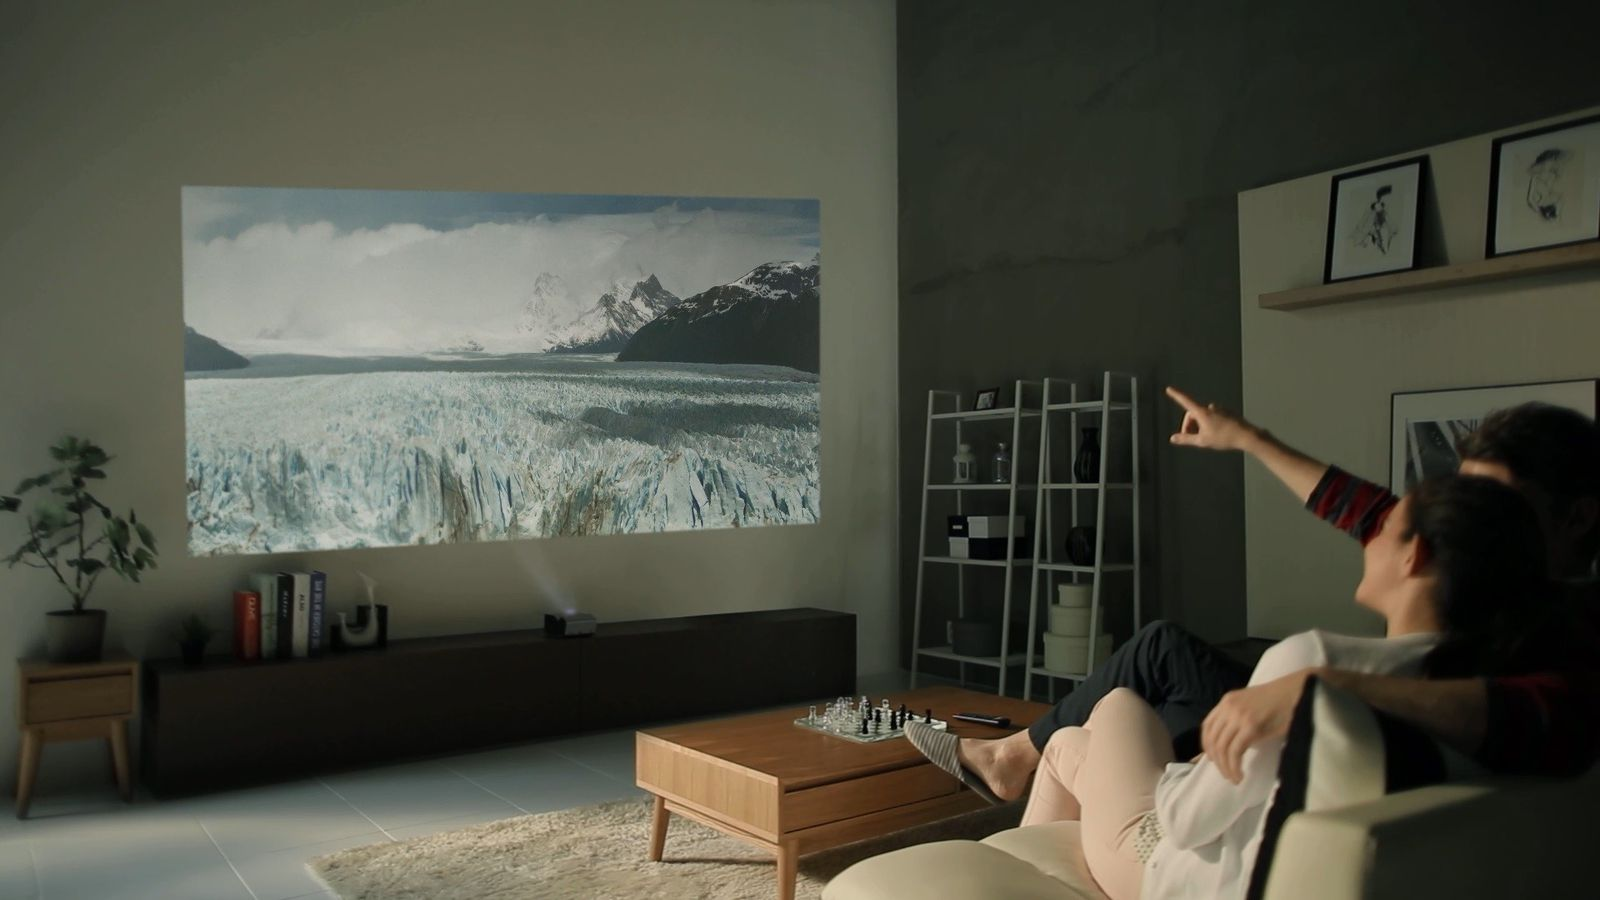 LG's new battery-powered projector can produce an 80-inch image from almost anywhere   The Verge